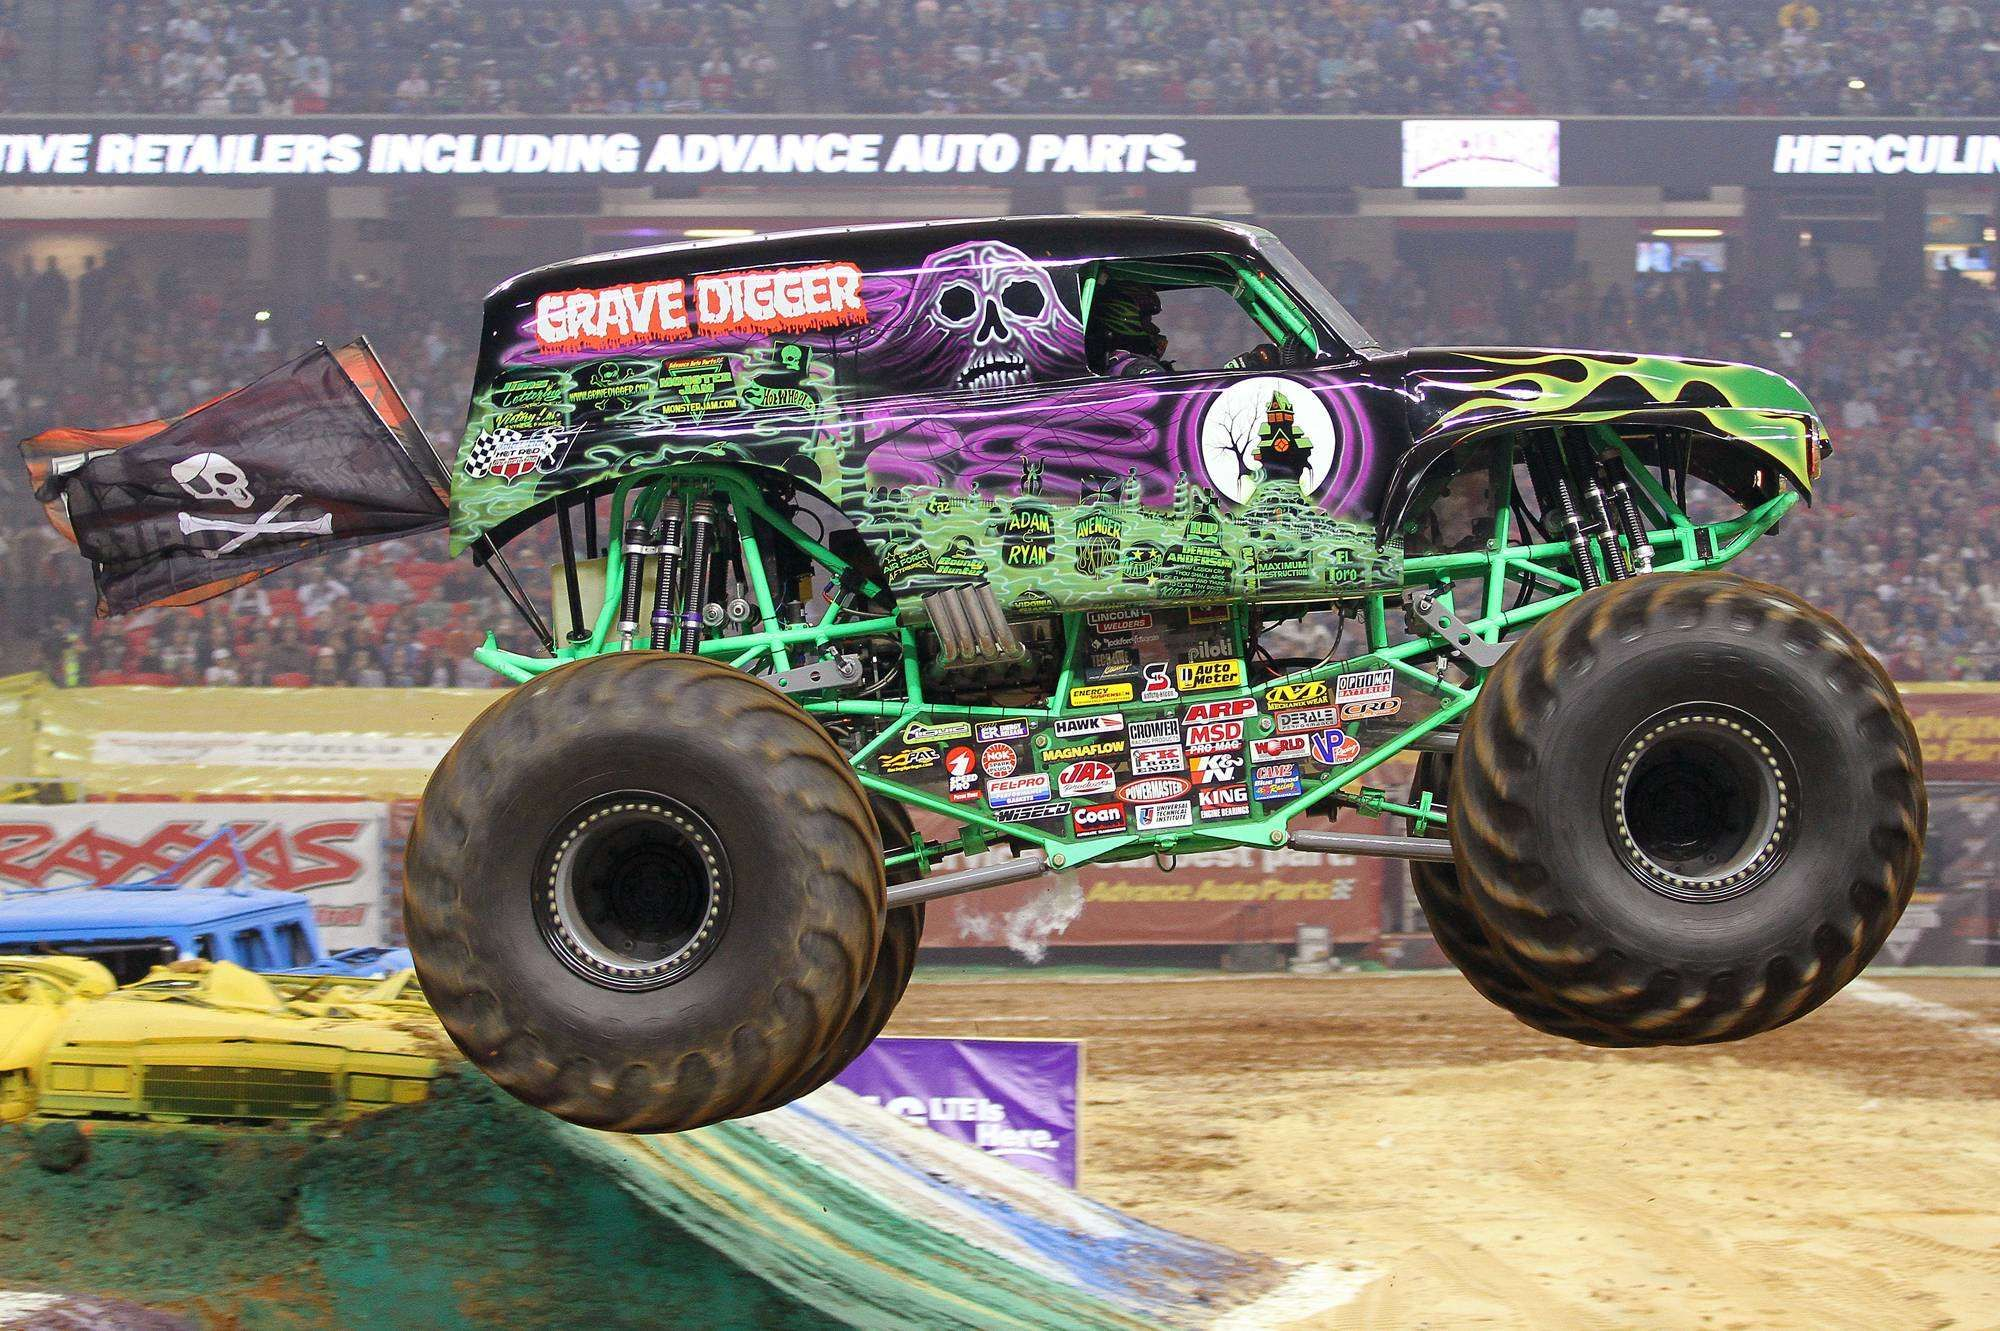 Grave Digger Monster Truck Wallpaper Http Hdwallpaper Info Grave Digger Monster Truck Wallpaper Hd Wallpapers Monster Trucks Mud Trucks Trucks